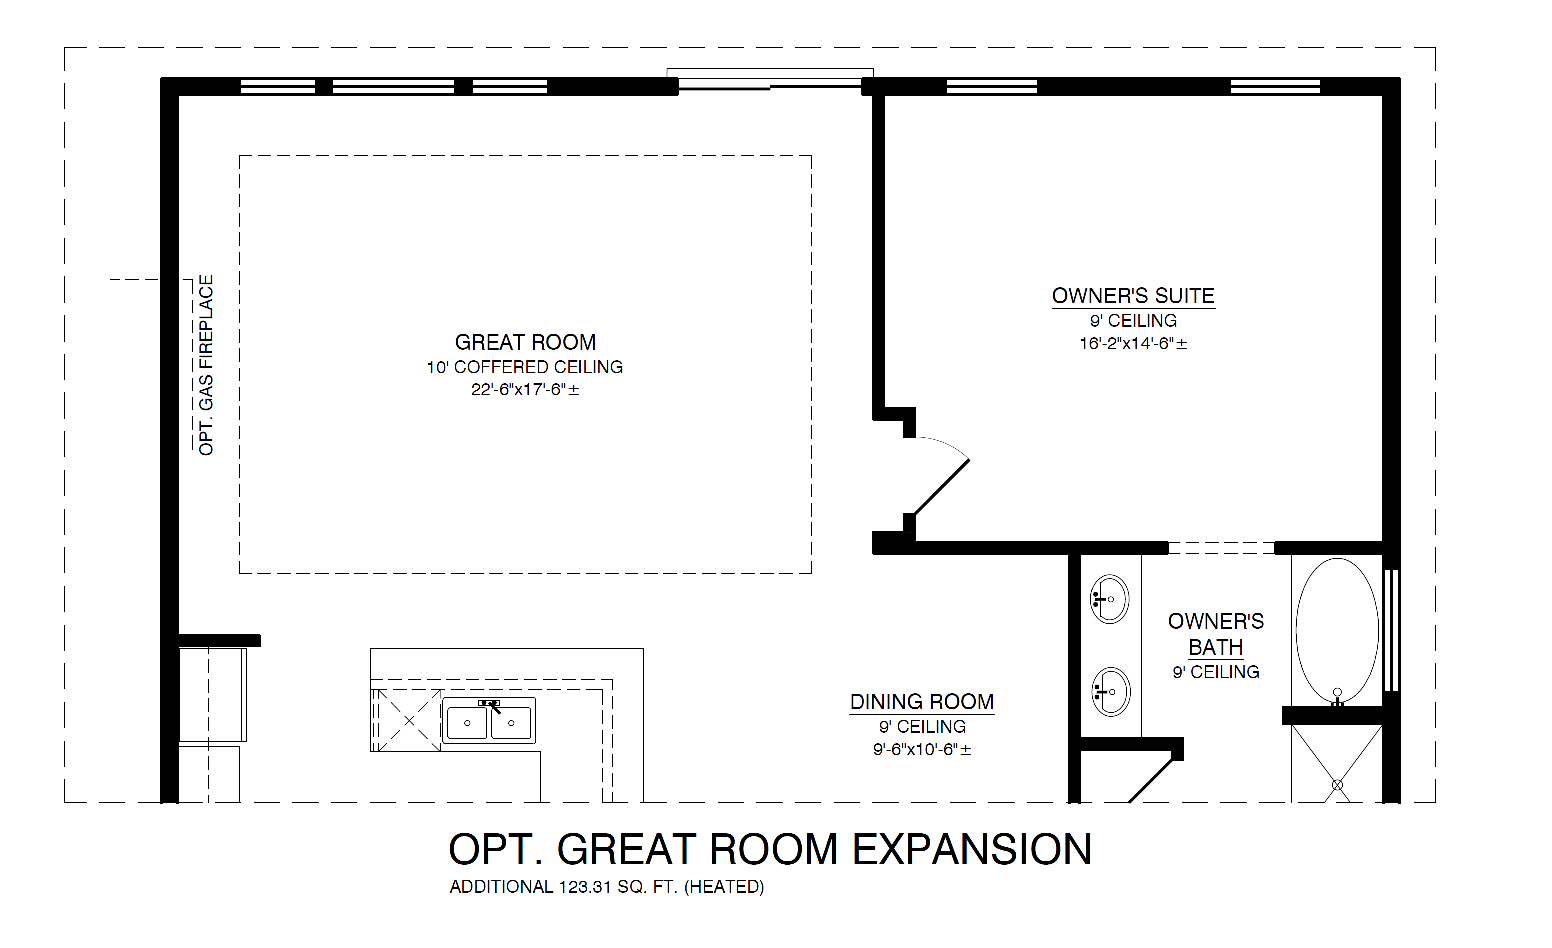 Optional Great Room Expansion